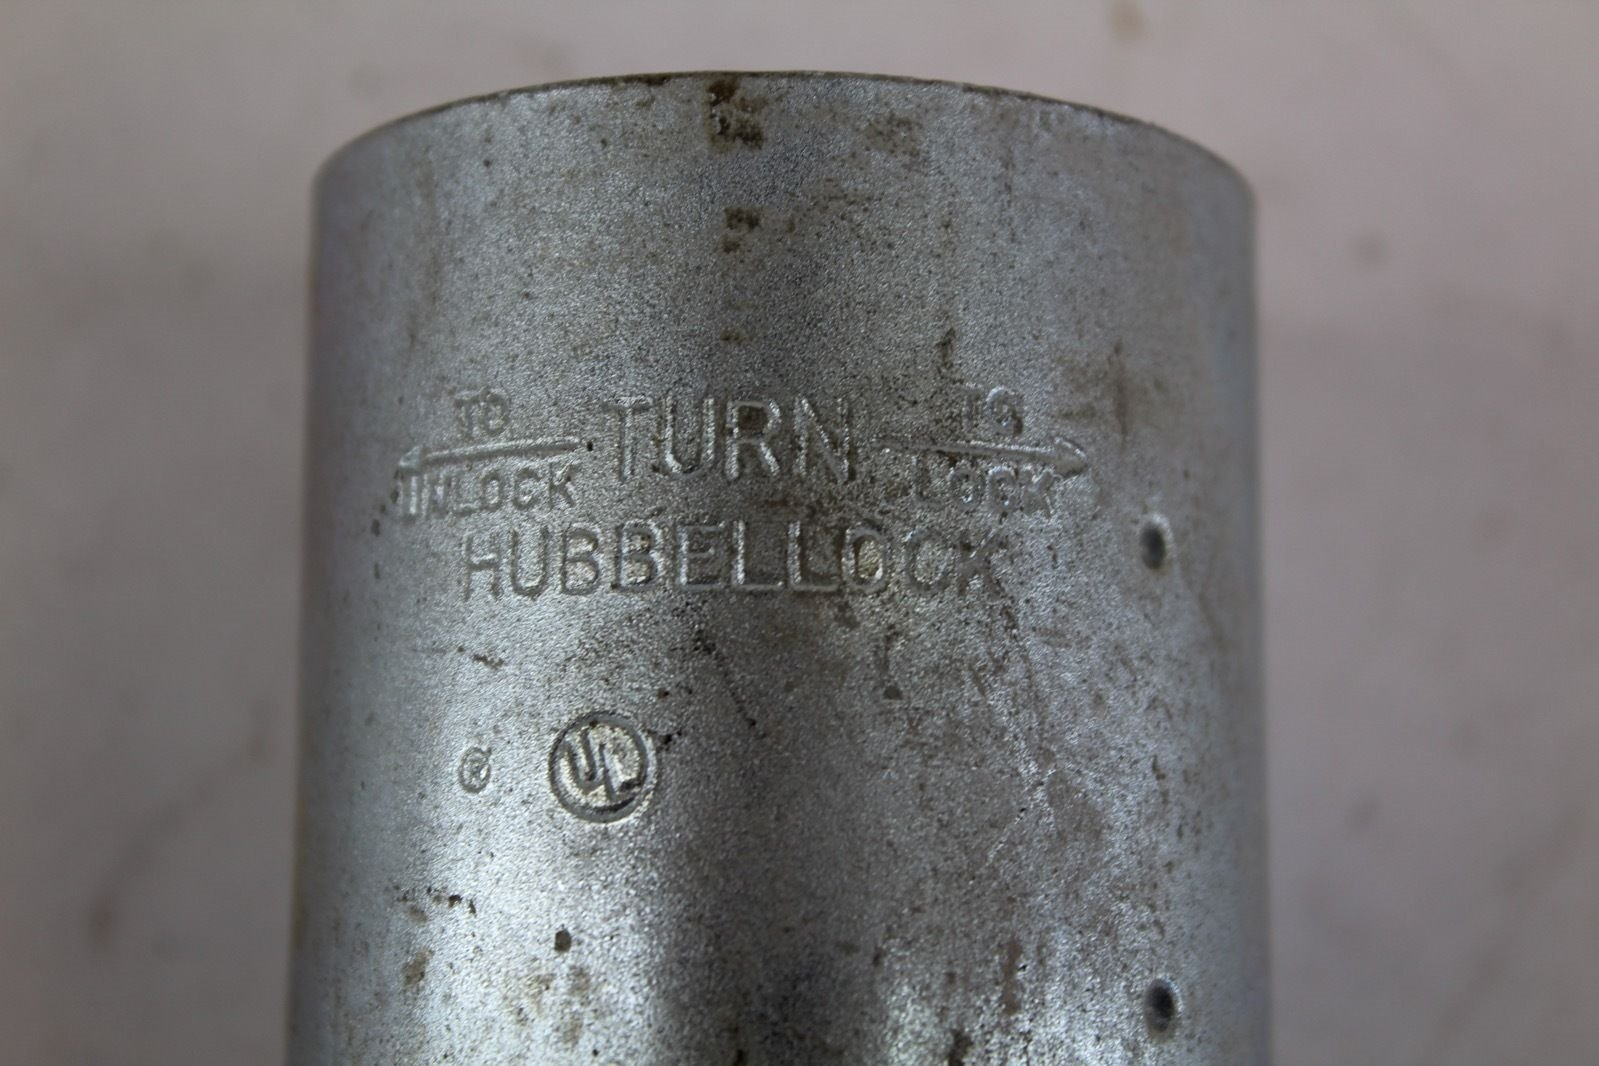 Hubbellock 45135 Connector 20A 250V DC/ 30A 600V AC *NEW* (B242) 2